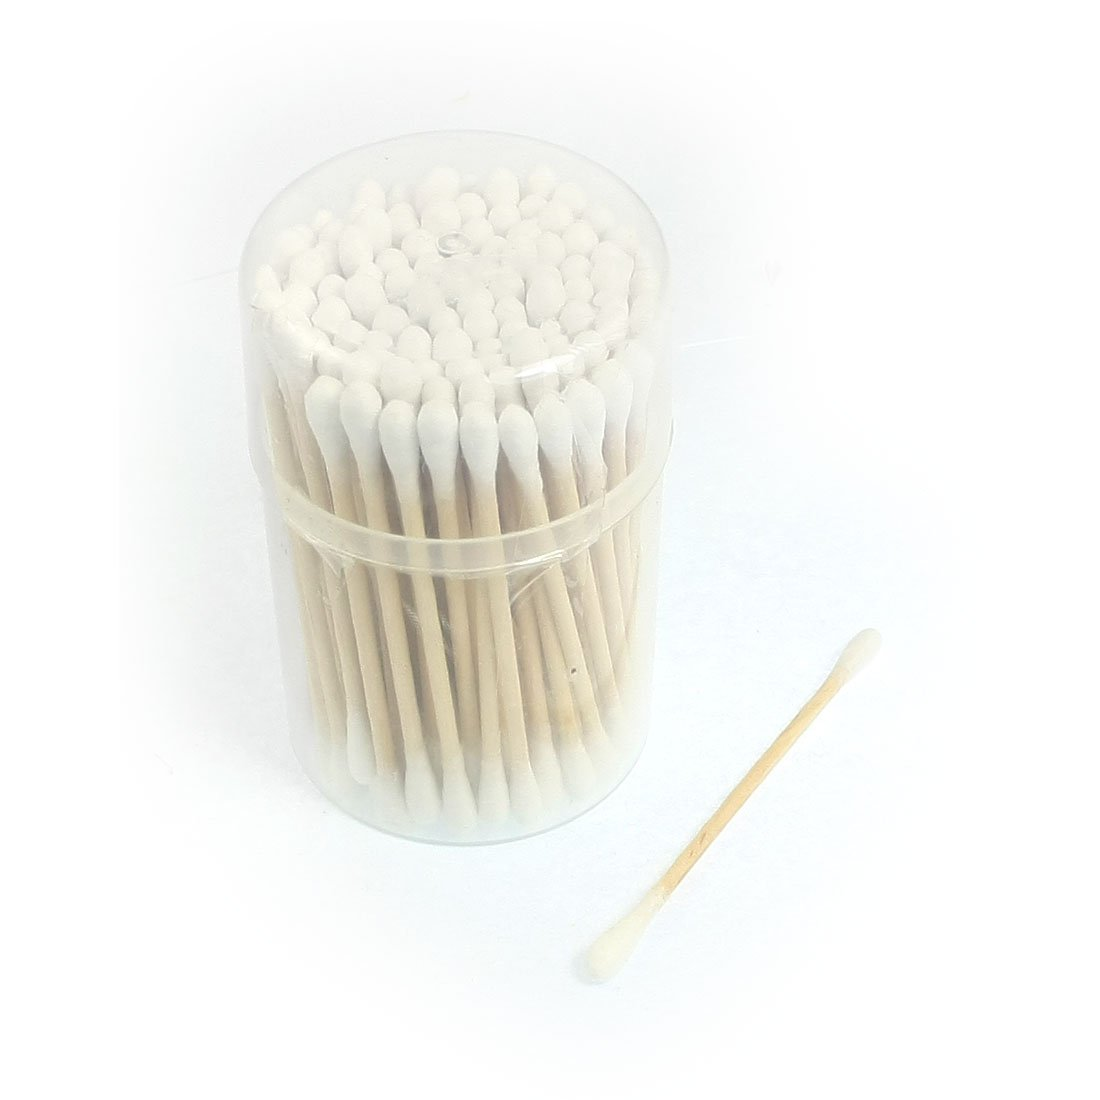 uxcell 100 Pcs Disposable Double Head Cotton Swab Bud White w Cylinder Shape Case a12082000ux0735